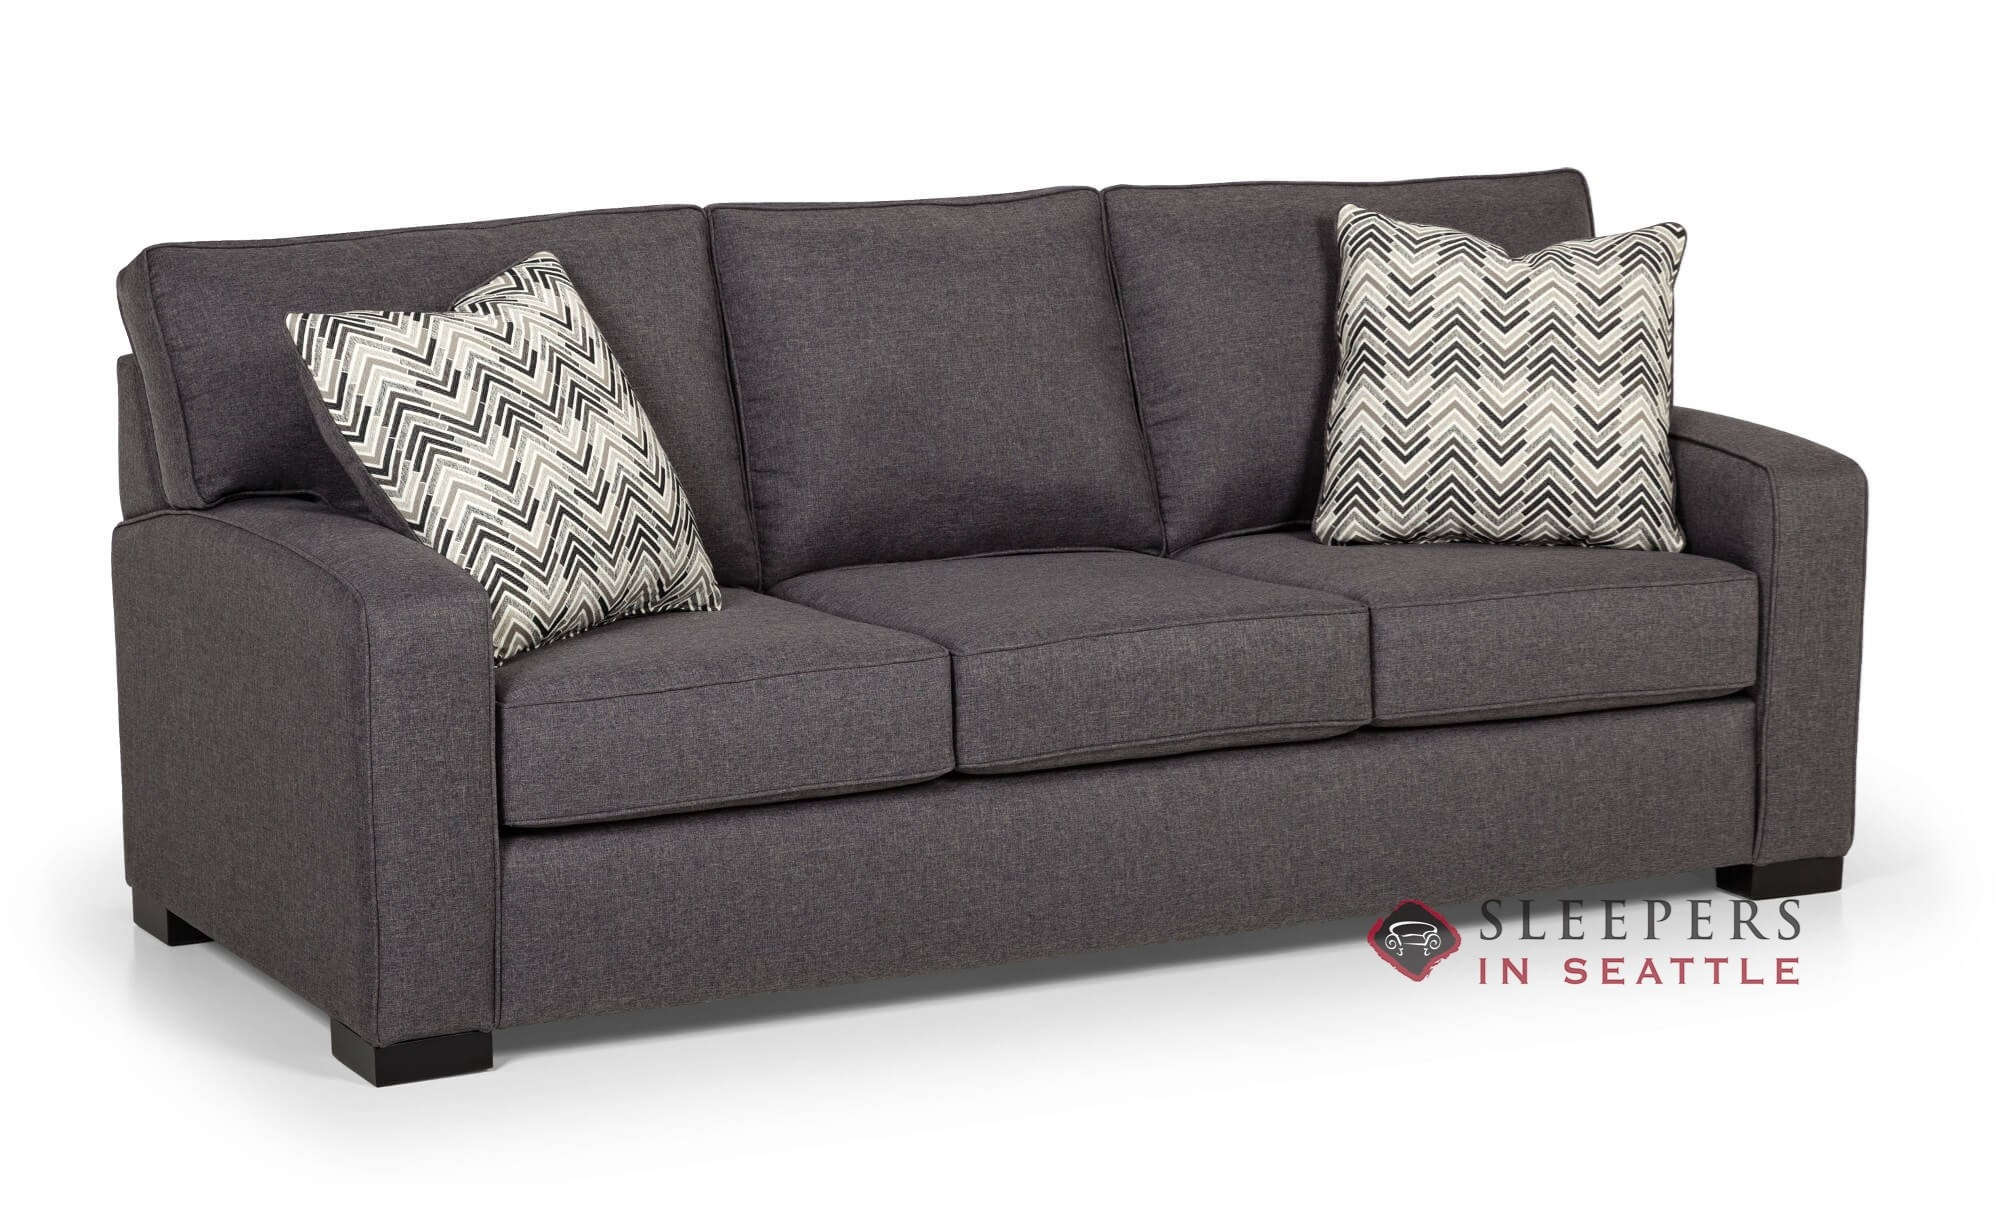 Customize And Personalize 375 Queen Fabric Sofa By Stanton Queen